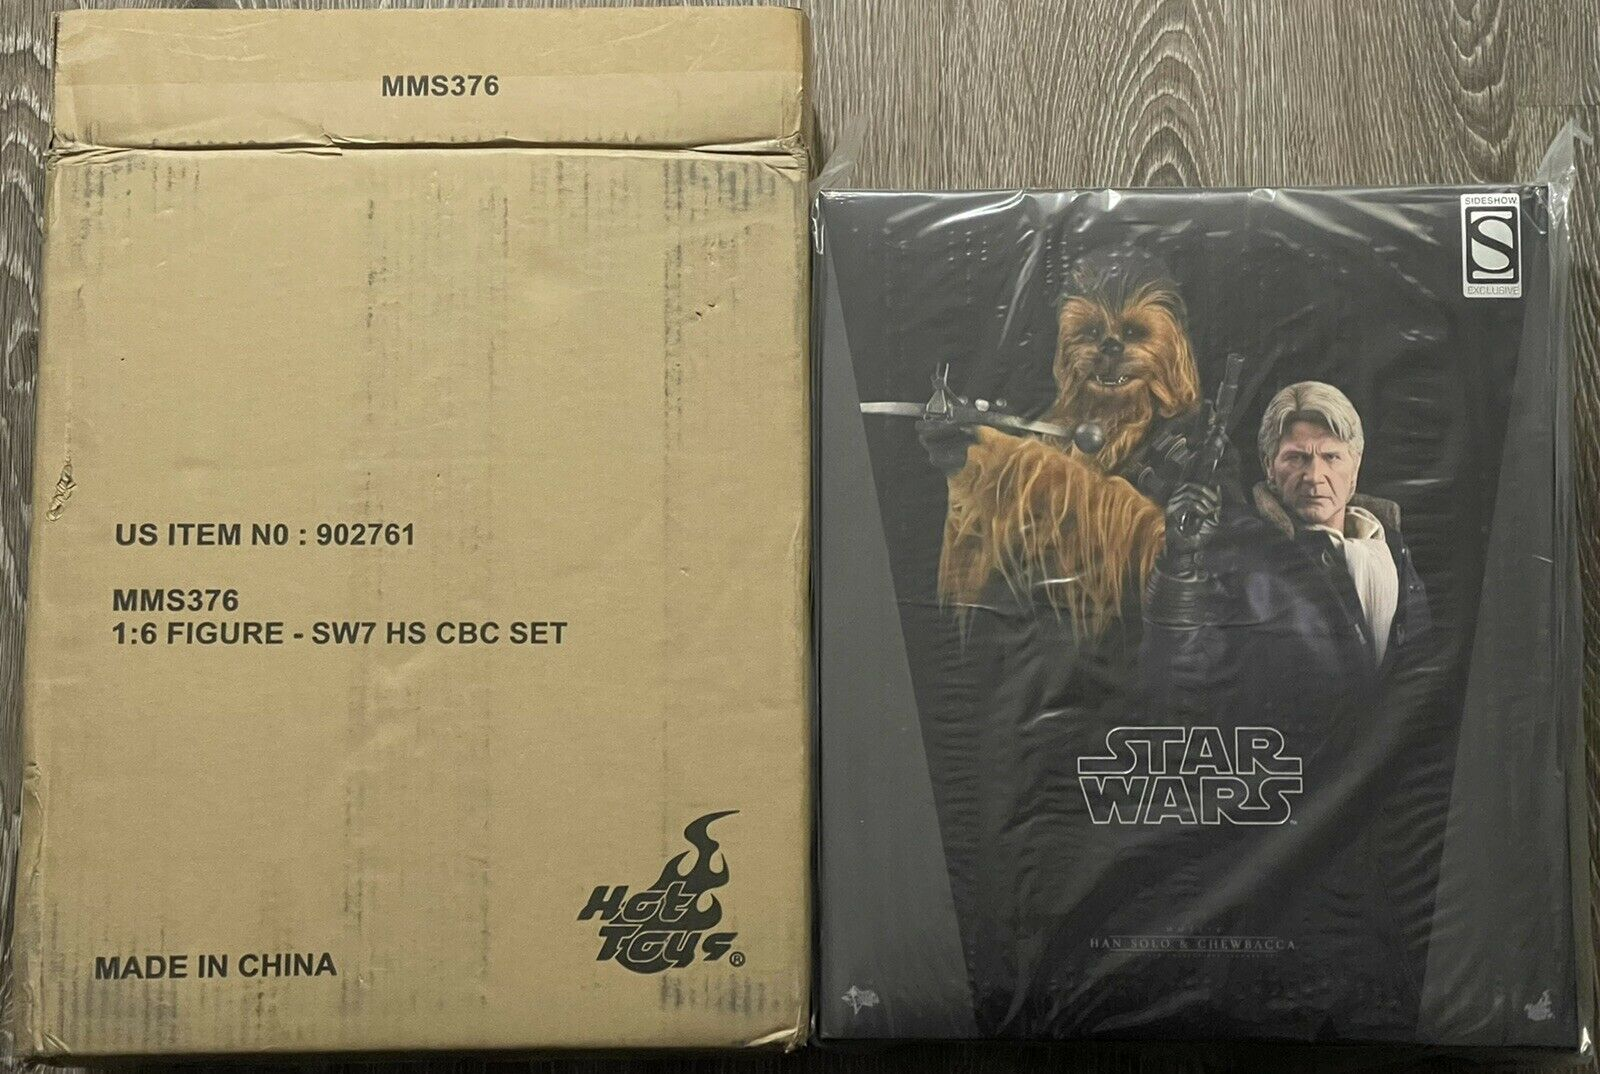 Hot Toys Star Wars HAN SOLO & CHEWBACCA The Force Awakens 1/6 Deluxe Set MMS376 on eBay thumbnail